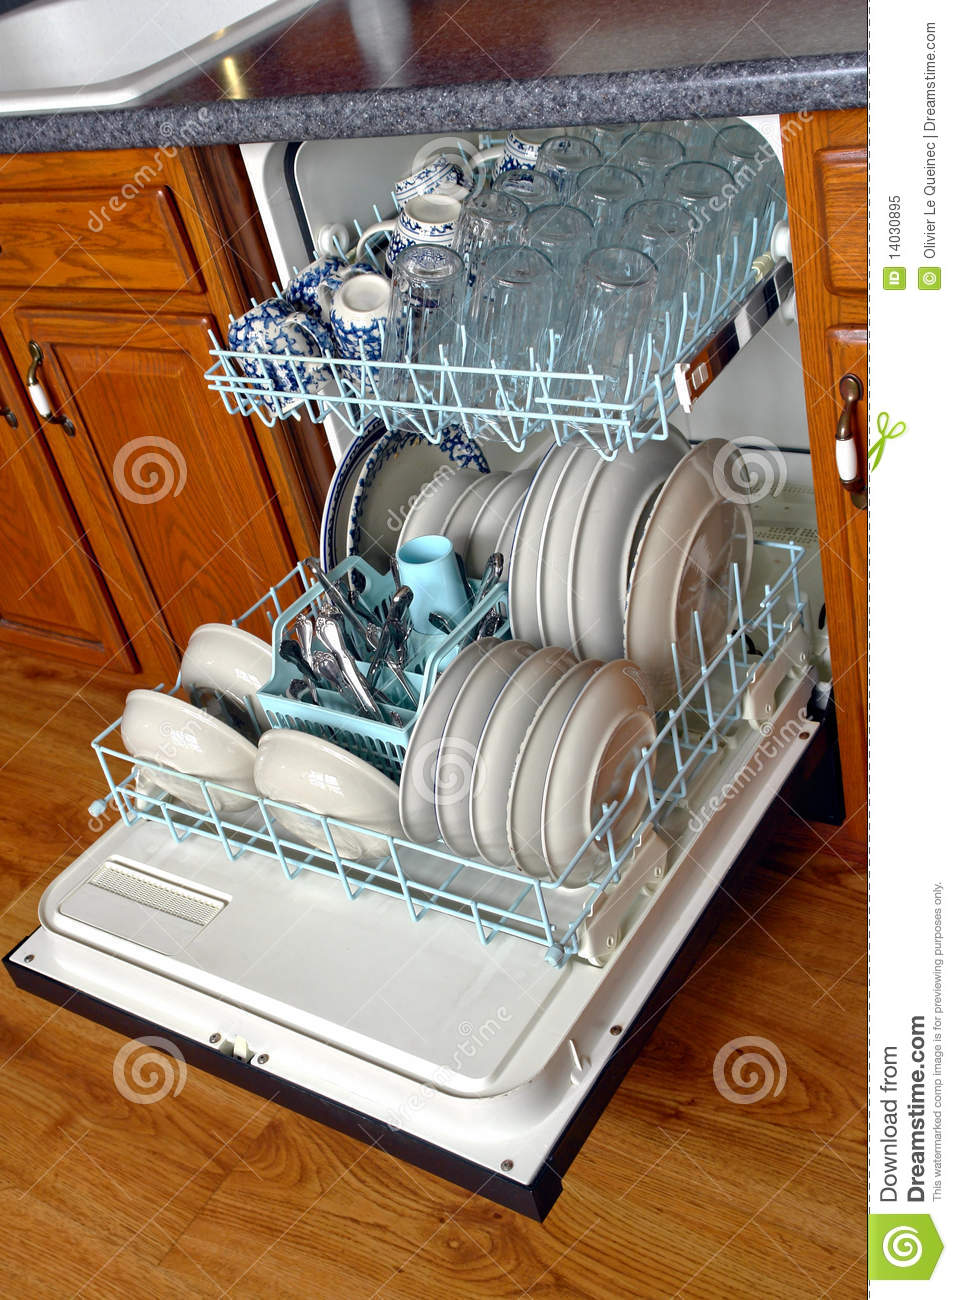 Open House Kitchen Dishwasher Full Of Dirty Dishes Royalty Free Stock